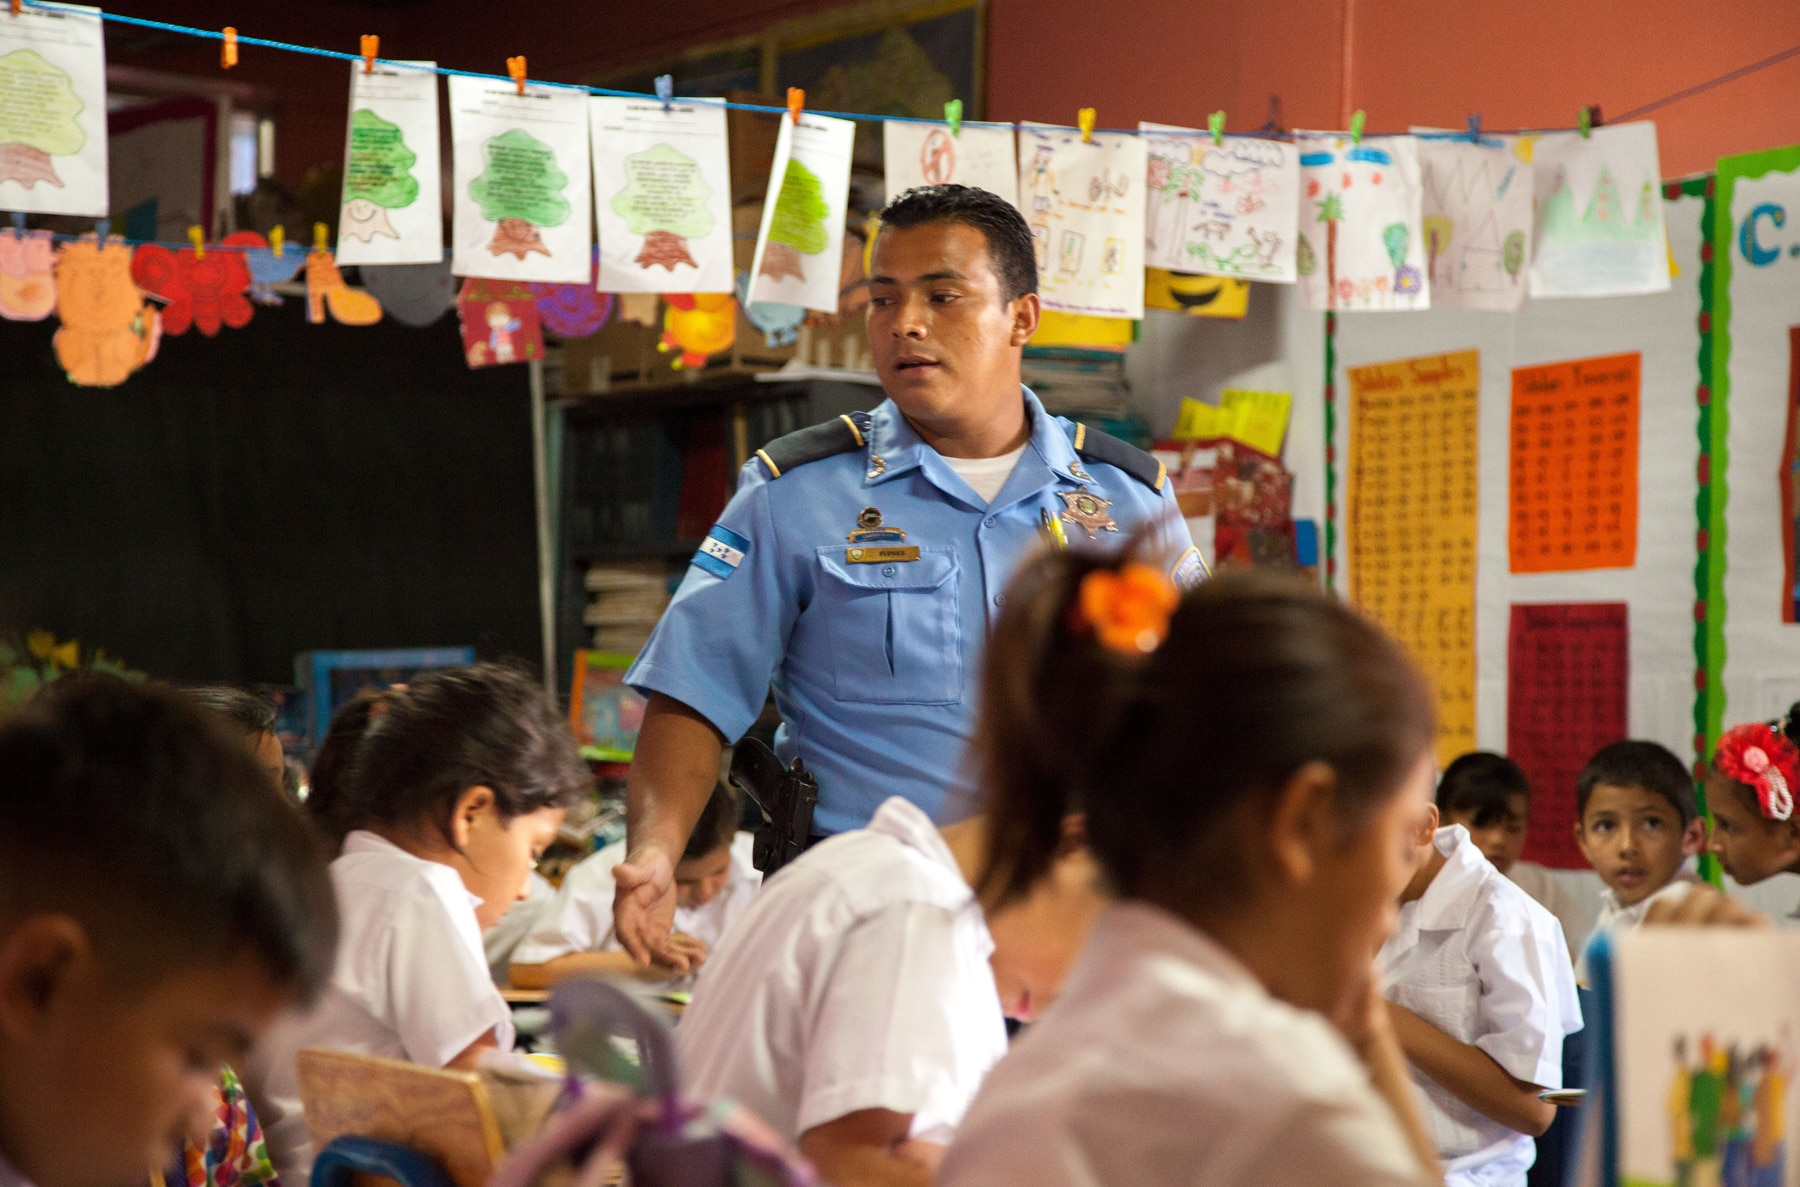 Police officer standing among children in classroom (U.S. Embassy Tegucigalpa/David Dulko)